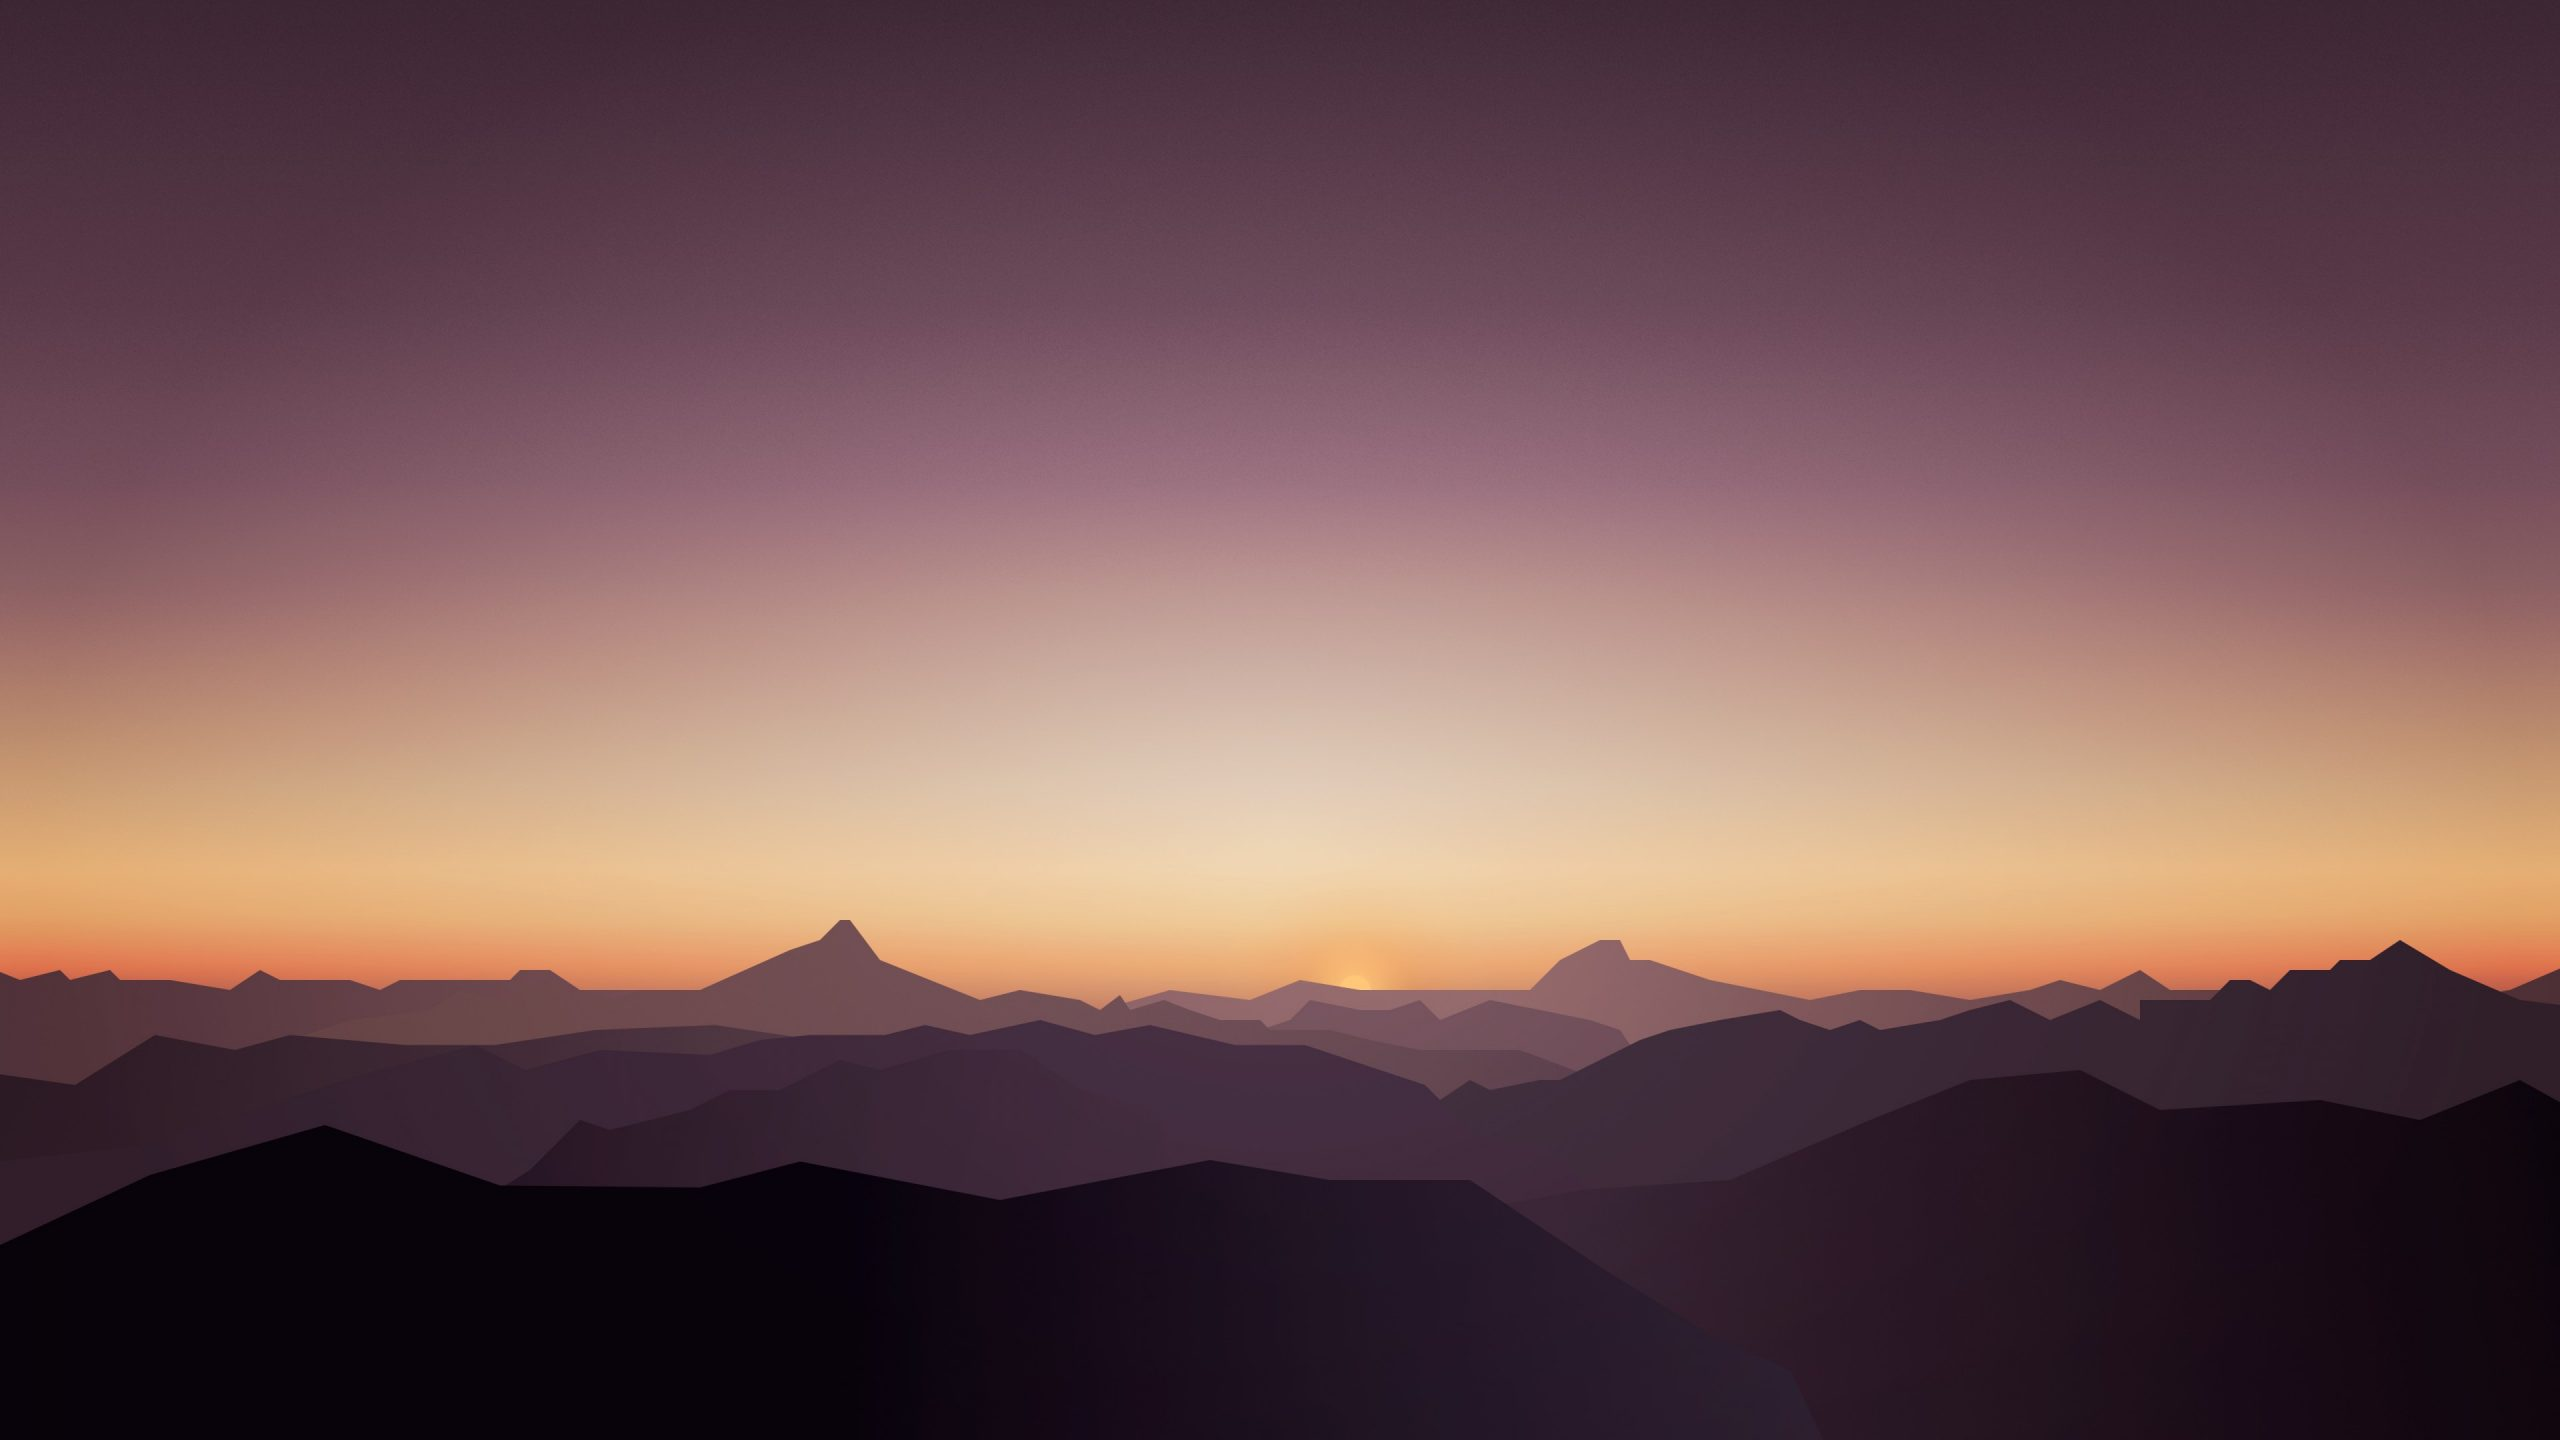 calm sunset mountains 5k wallpapers